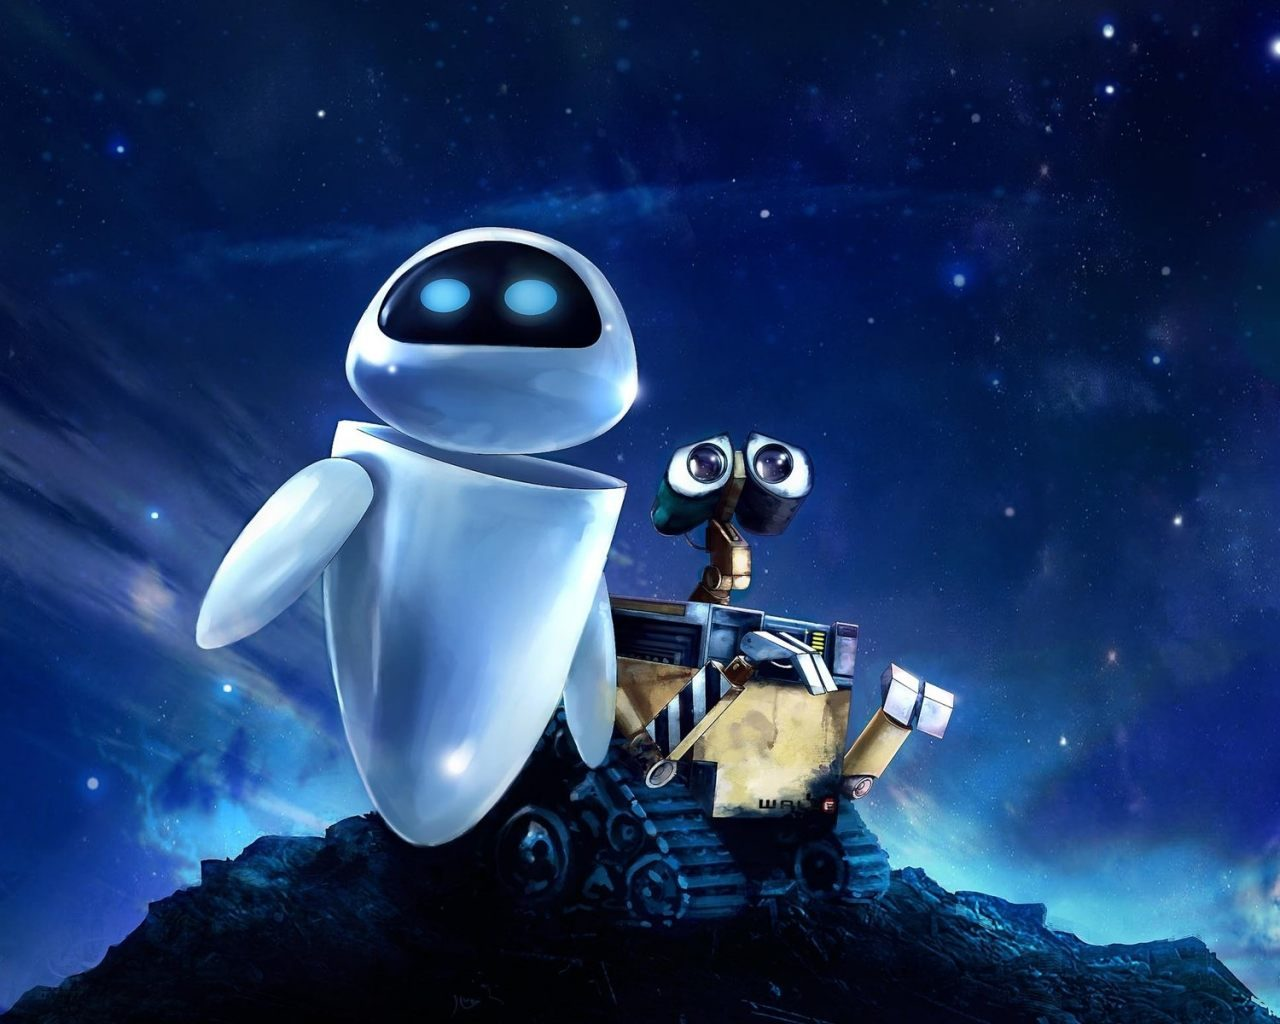 wall e 1280x1024 fondos de pantalla y wallpapers